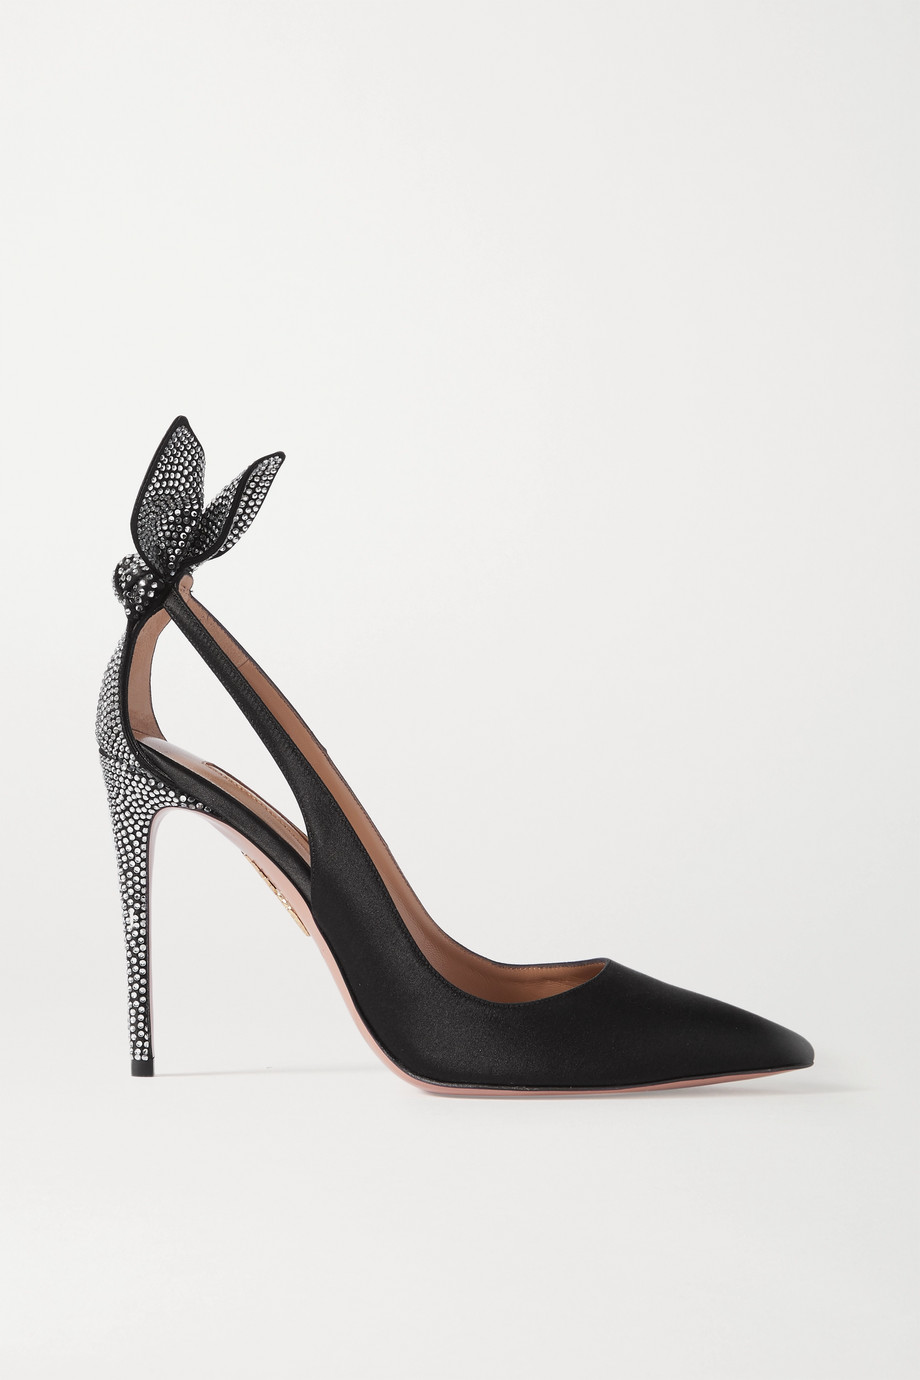 Aquazzura Bow Tie 105 crystal-embellished satin pumps